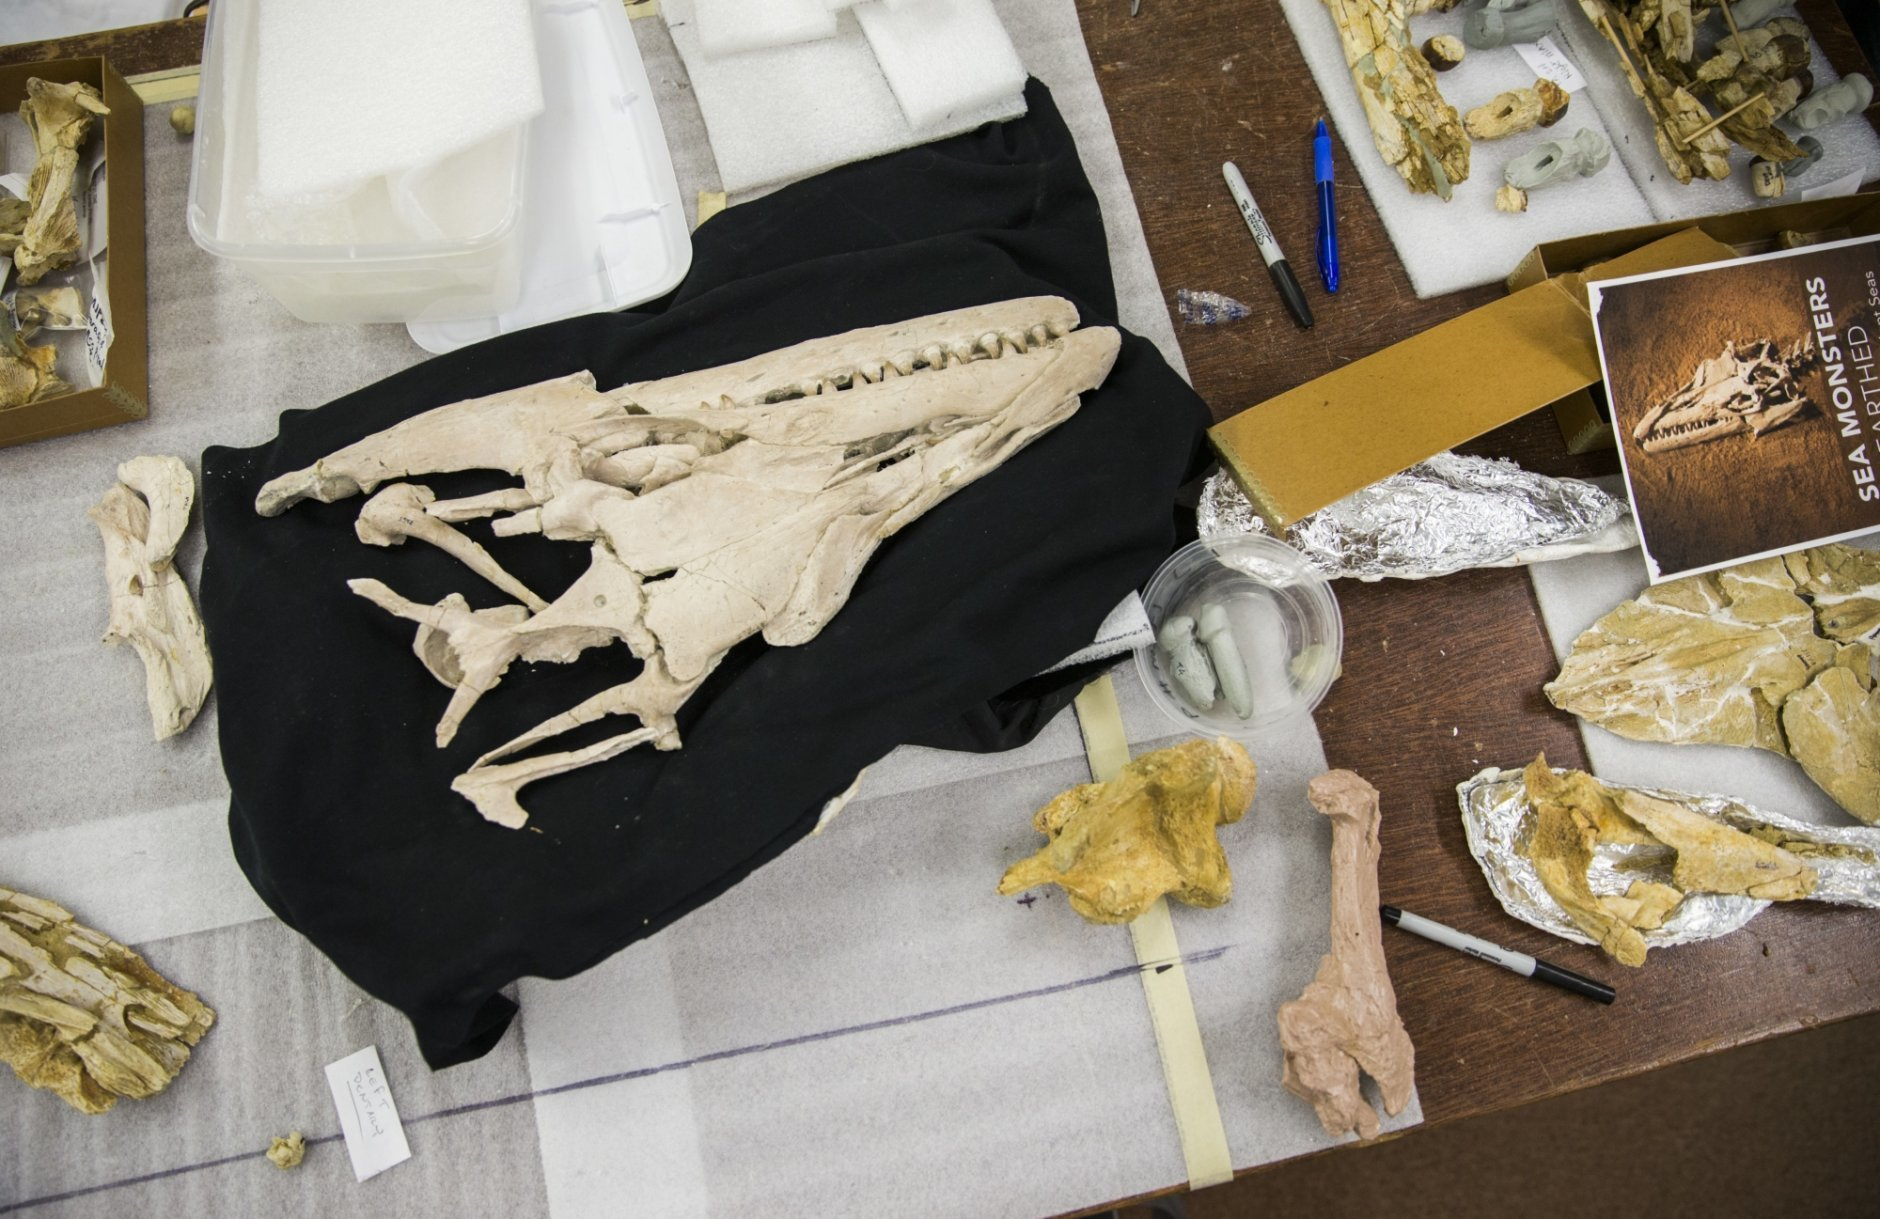 This Oct. 16, 2018 photo shows an Angolasaurus skull and other bones are being prepared by Professors of Paleontology Louis Jacobs and Michael Polcyn as part of a collection of Angolan mosasaurs, or extinct marine reptiles, for an exhibit at the Smithsonian  at SMU in Dallas. They and their team have uncovered remains in Angola for over a decade, and their work will be displayed at the Smithsonian for two years.    (Ashley Landis/The Dallas Morning News via AP)  /The Dallas Morning News via AP)